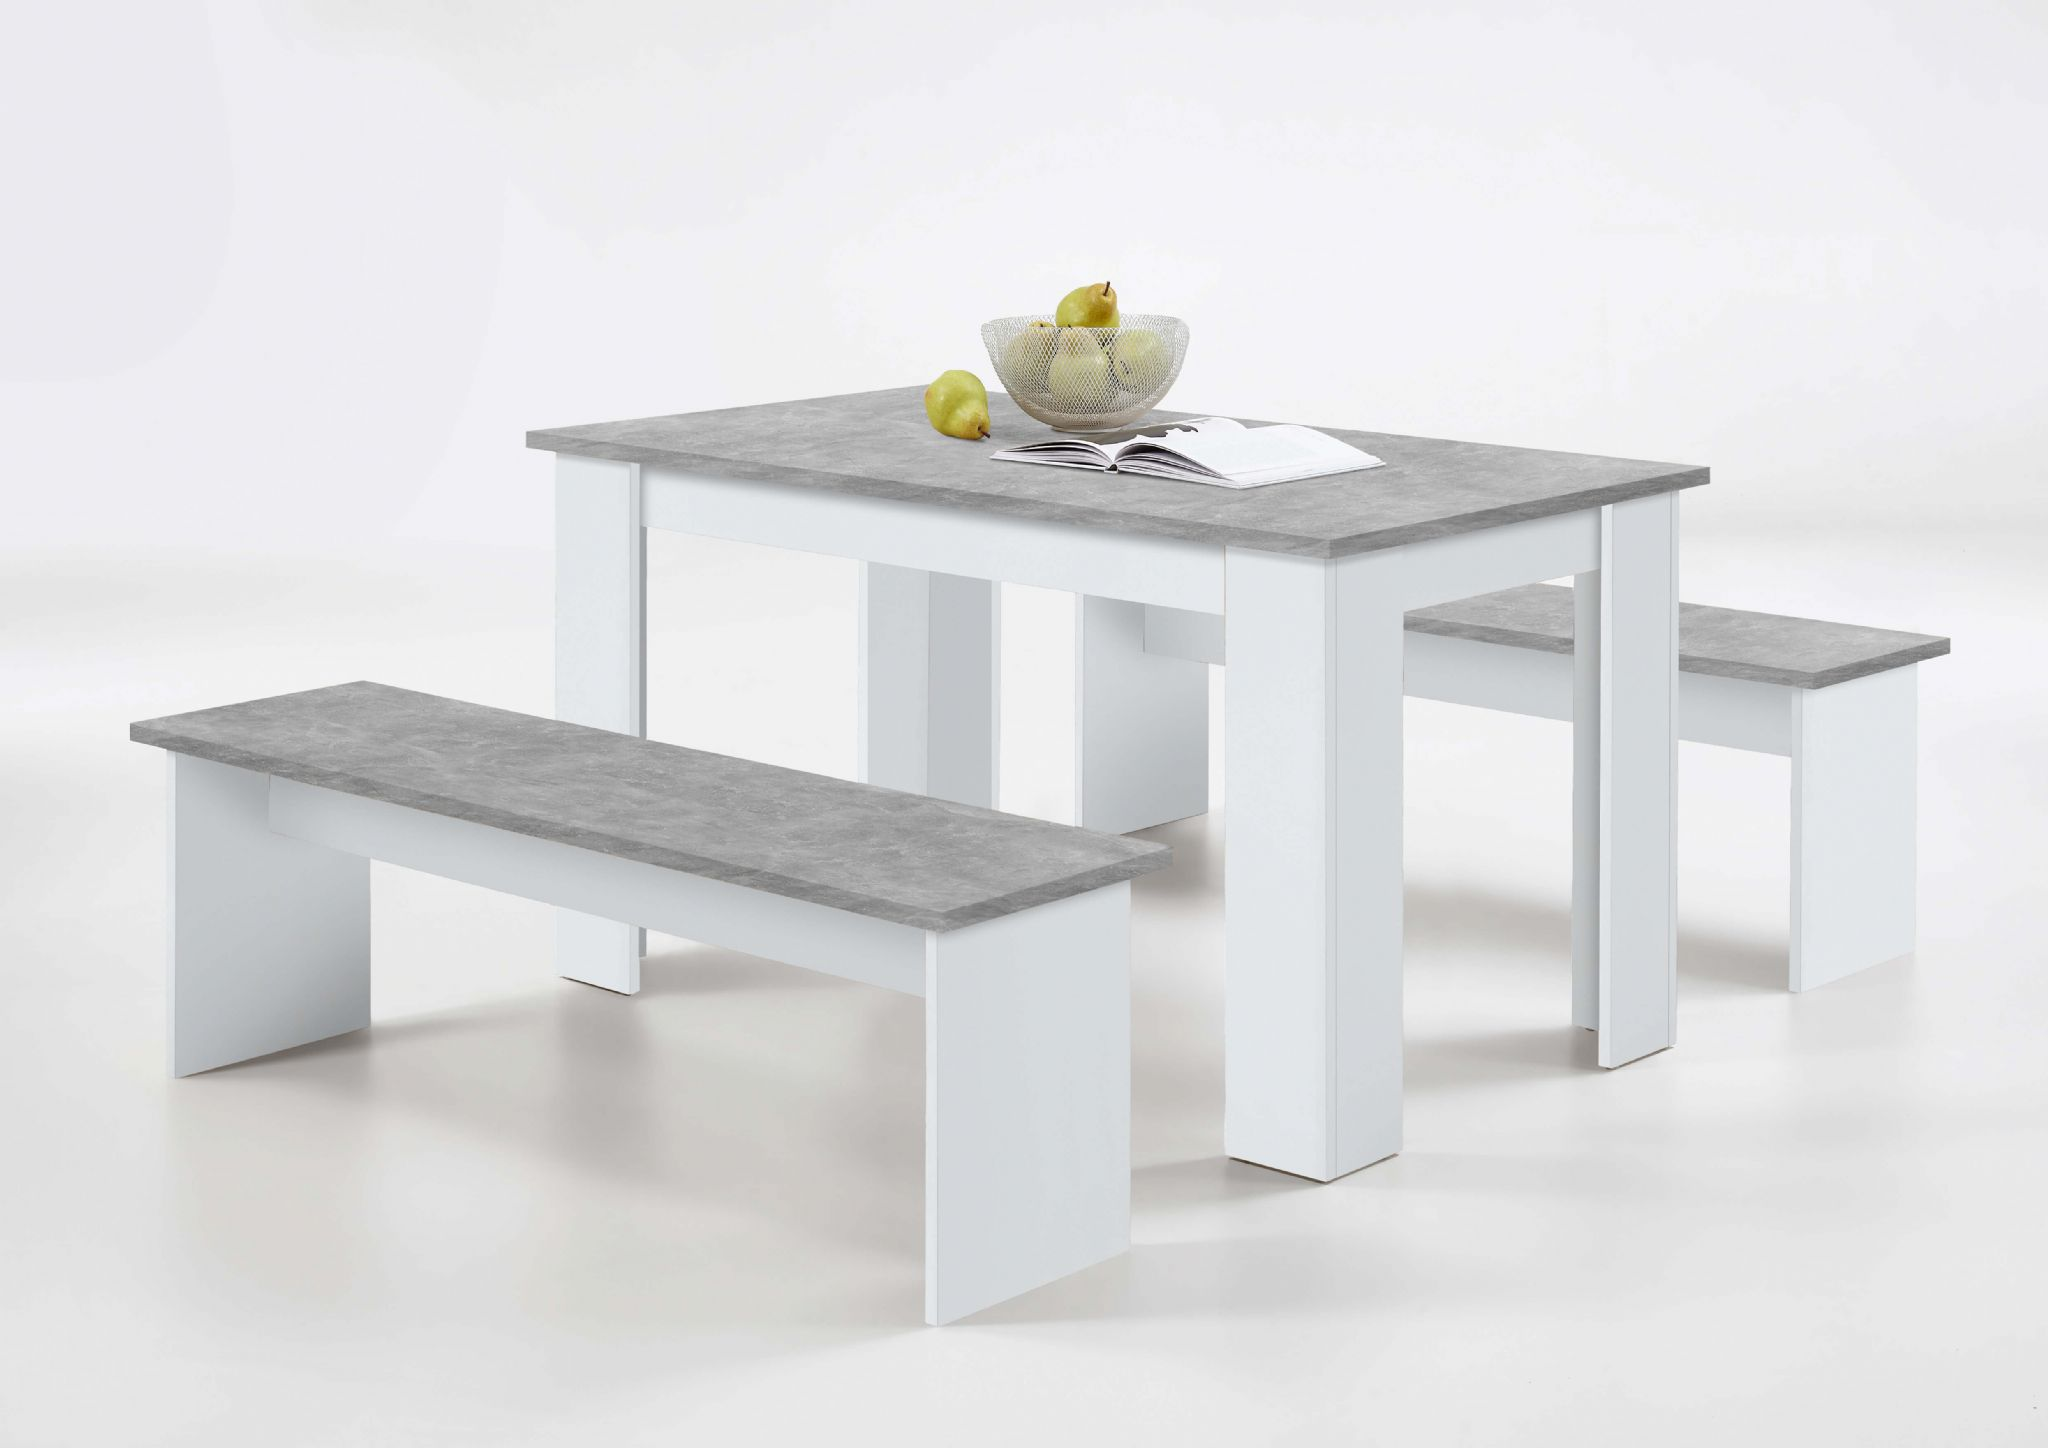 Picture of: Durban White And Grey Dining Table With Bench Seats Sale At Furniturefactor